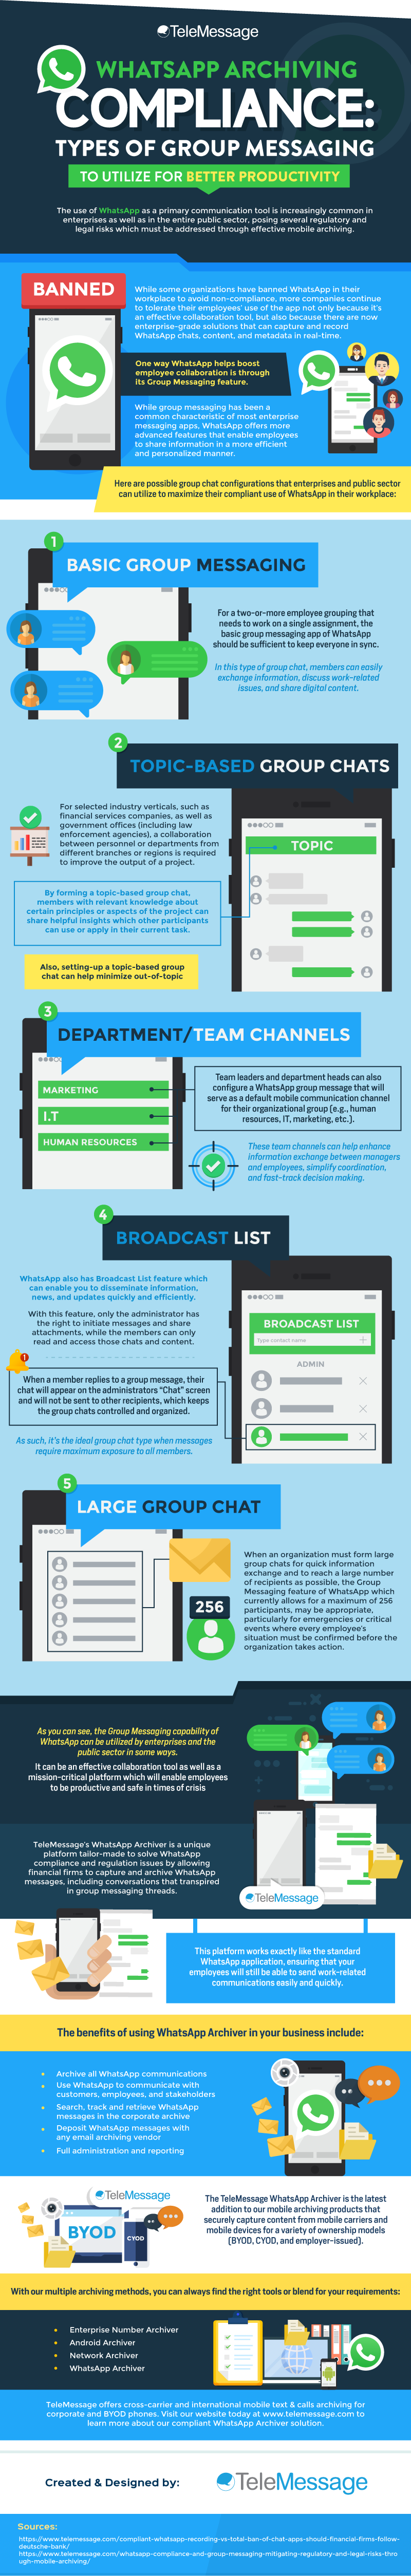 WhatsApp Archiving Compliance: Types of Group Messaging to Utilize For Better Productivity - Infographic